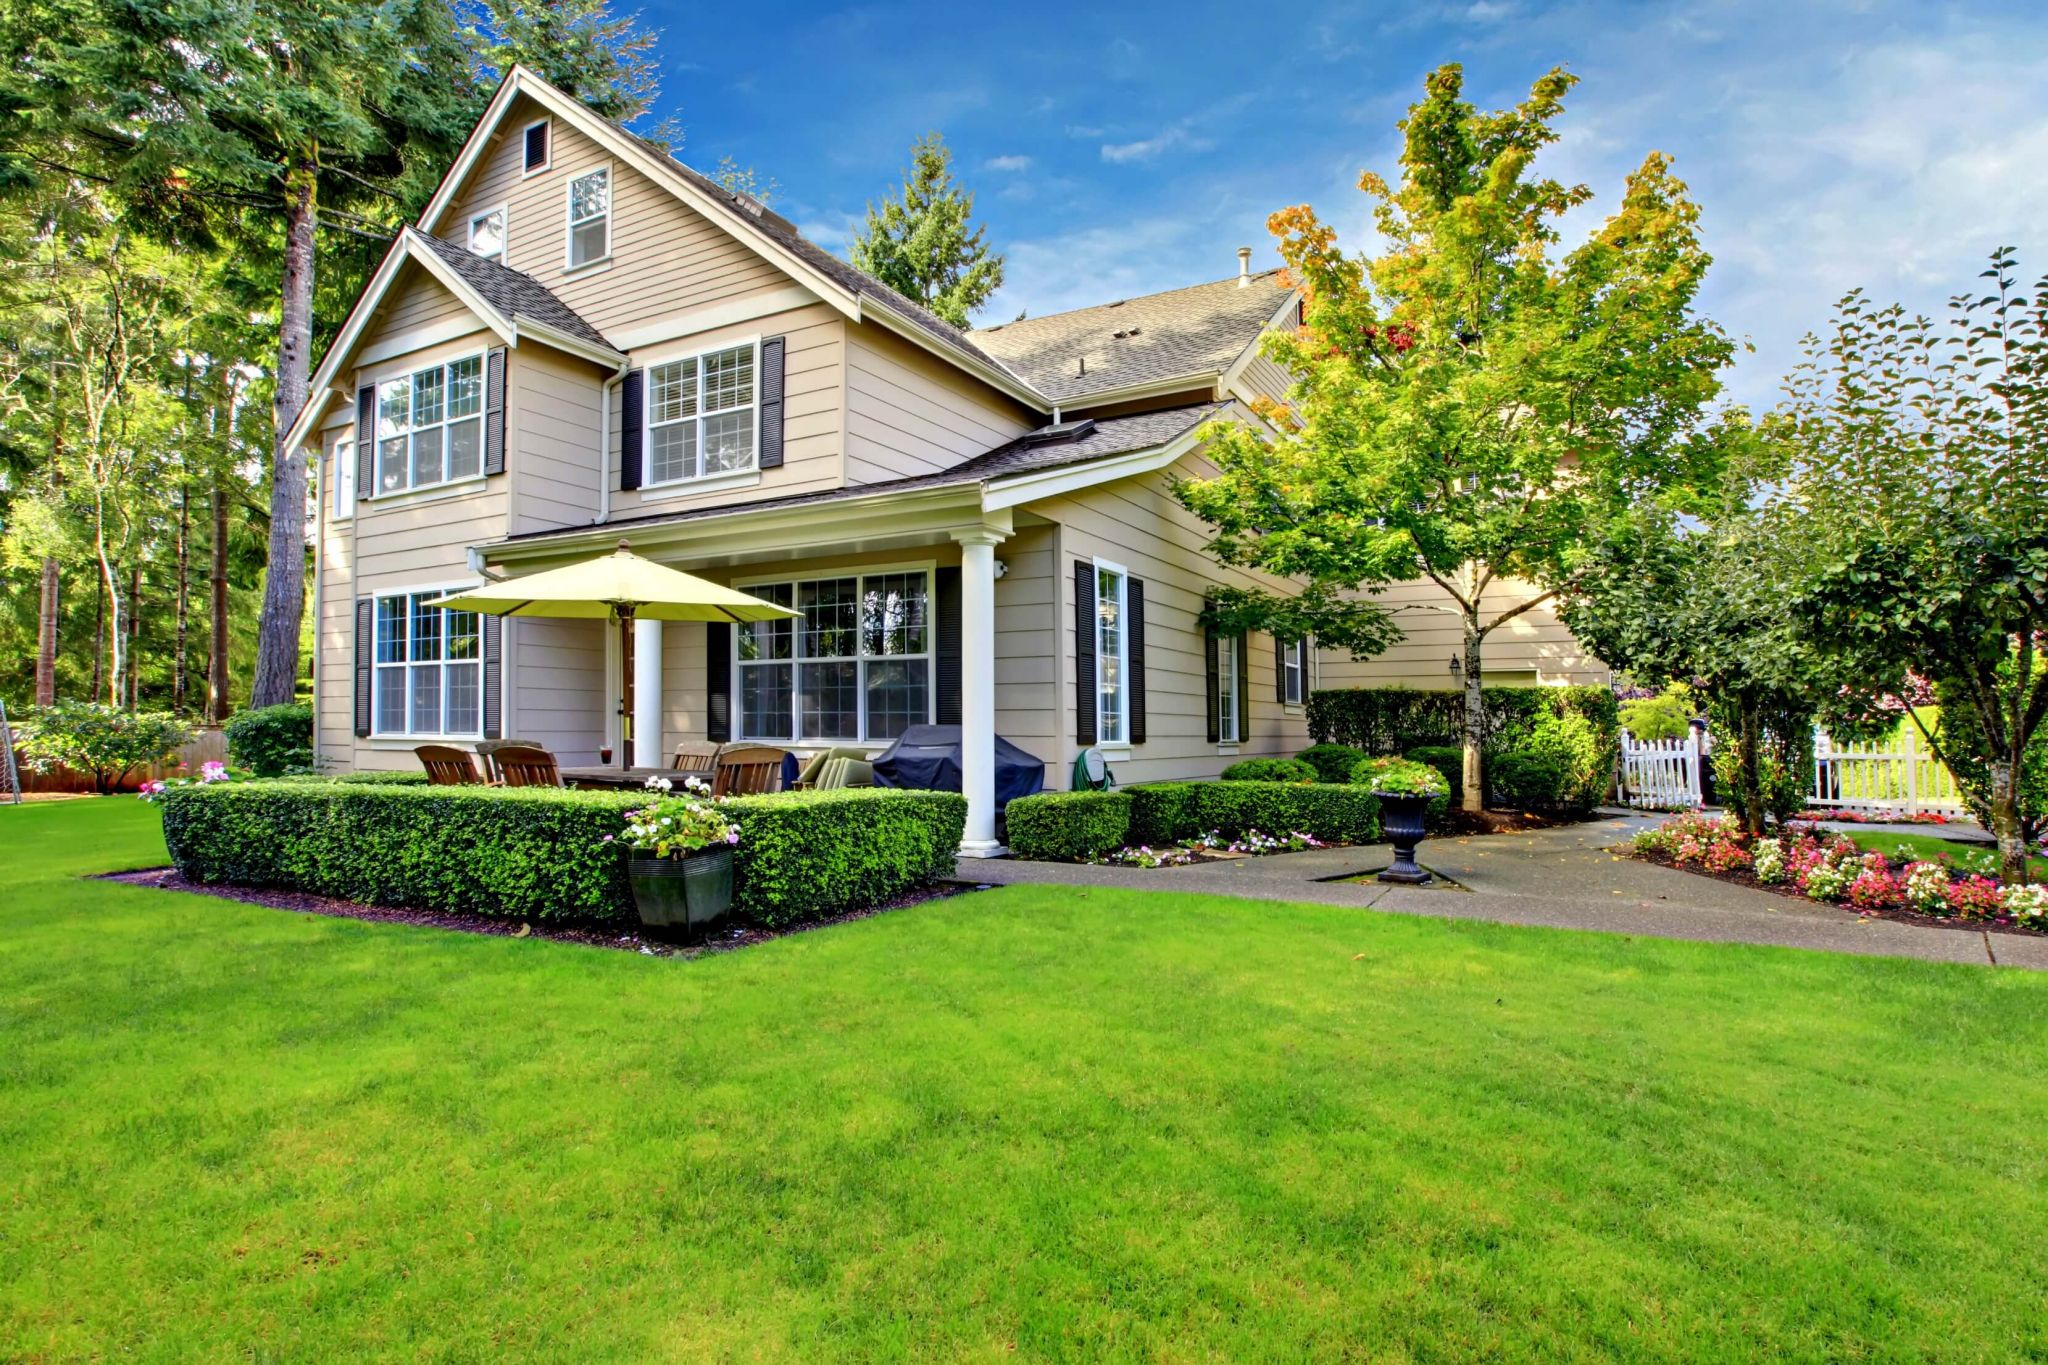 home maintenance checklist - large house exterior and gardens